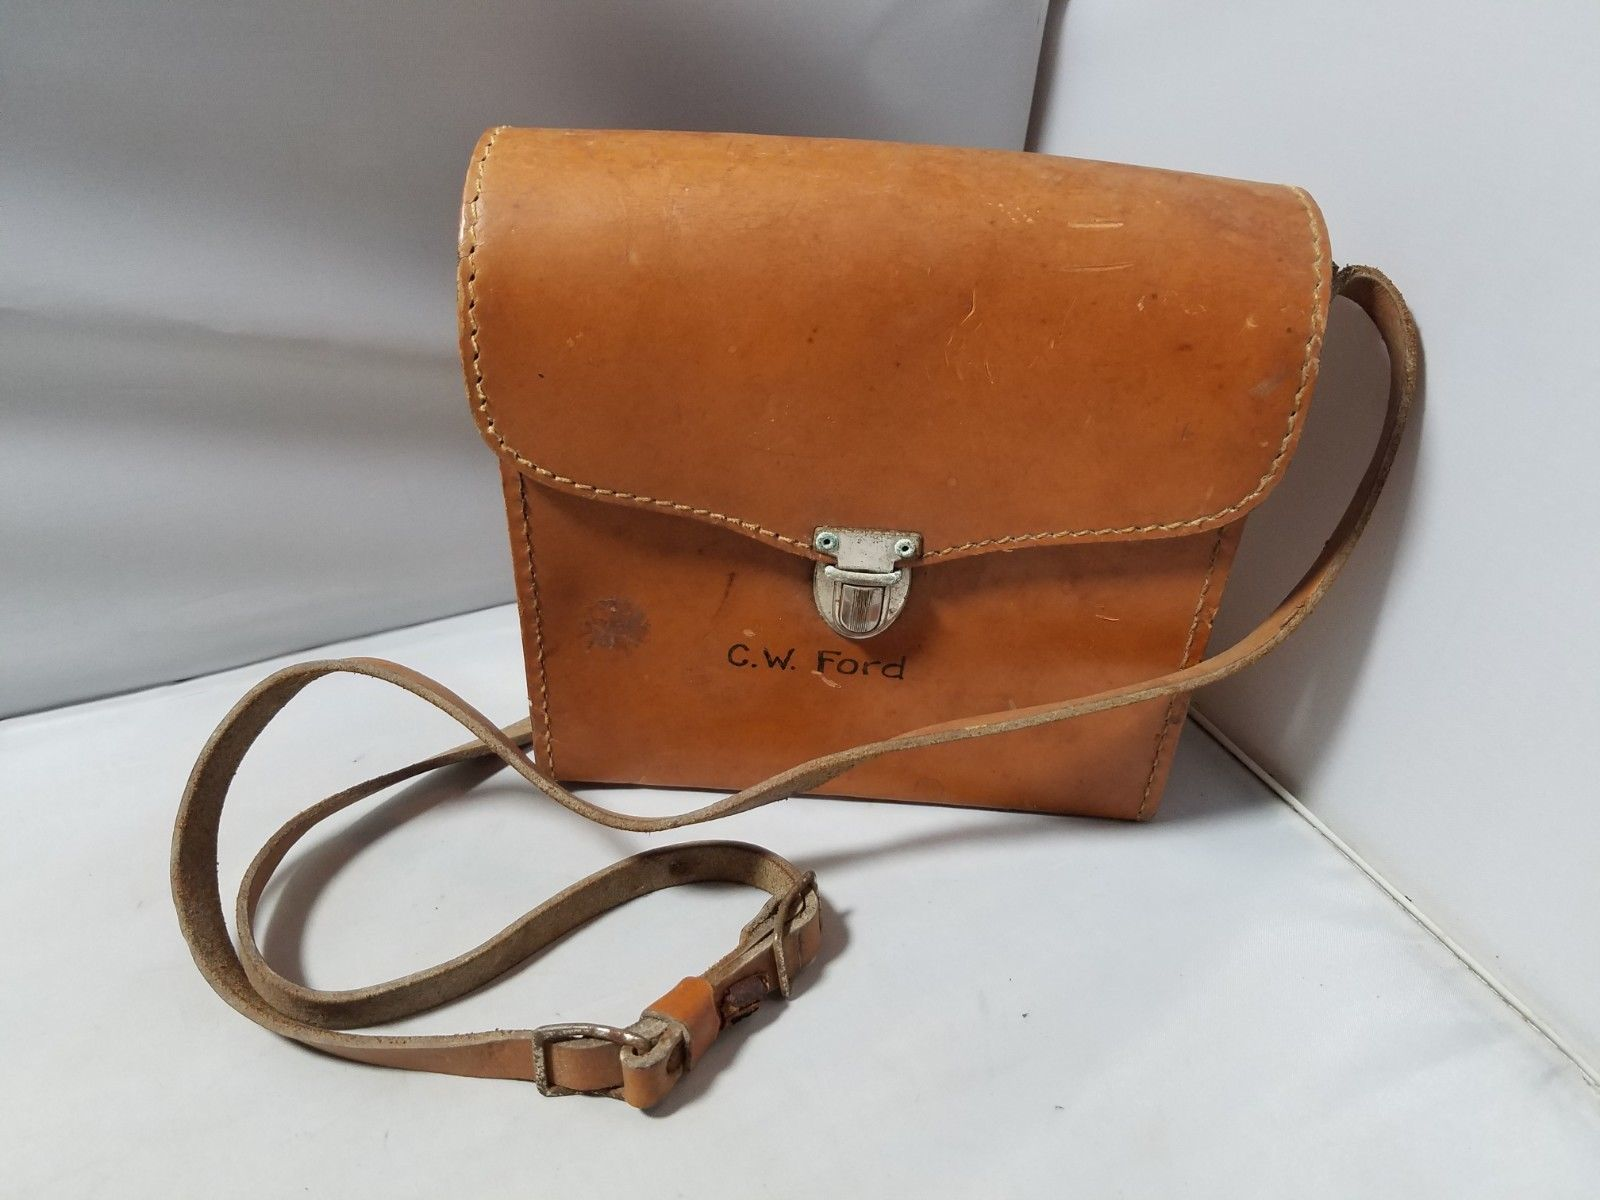 Vintage Camera Equipment Accessories Leather Brown Carrying Case Light Modifier